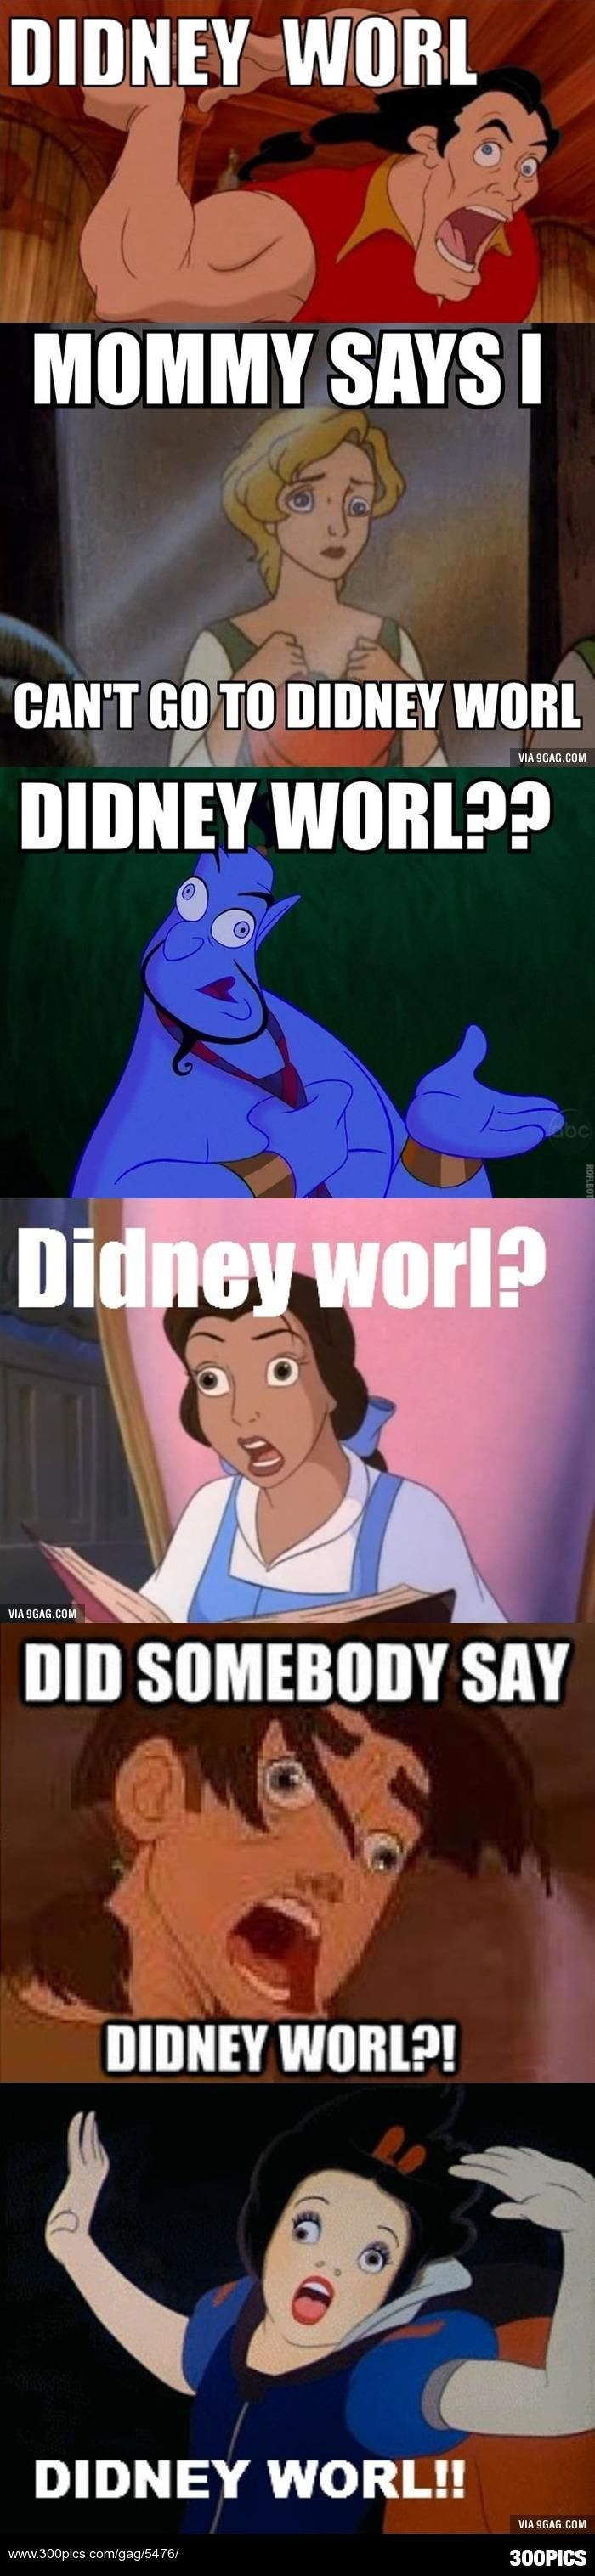 Thought this belonged to here... DIDNEY WORL?!?!? - 300Pics